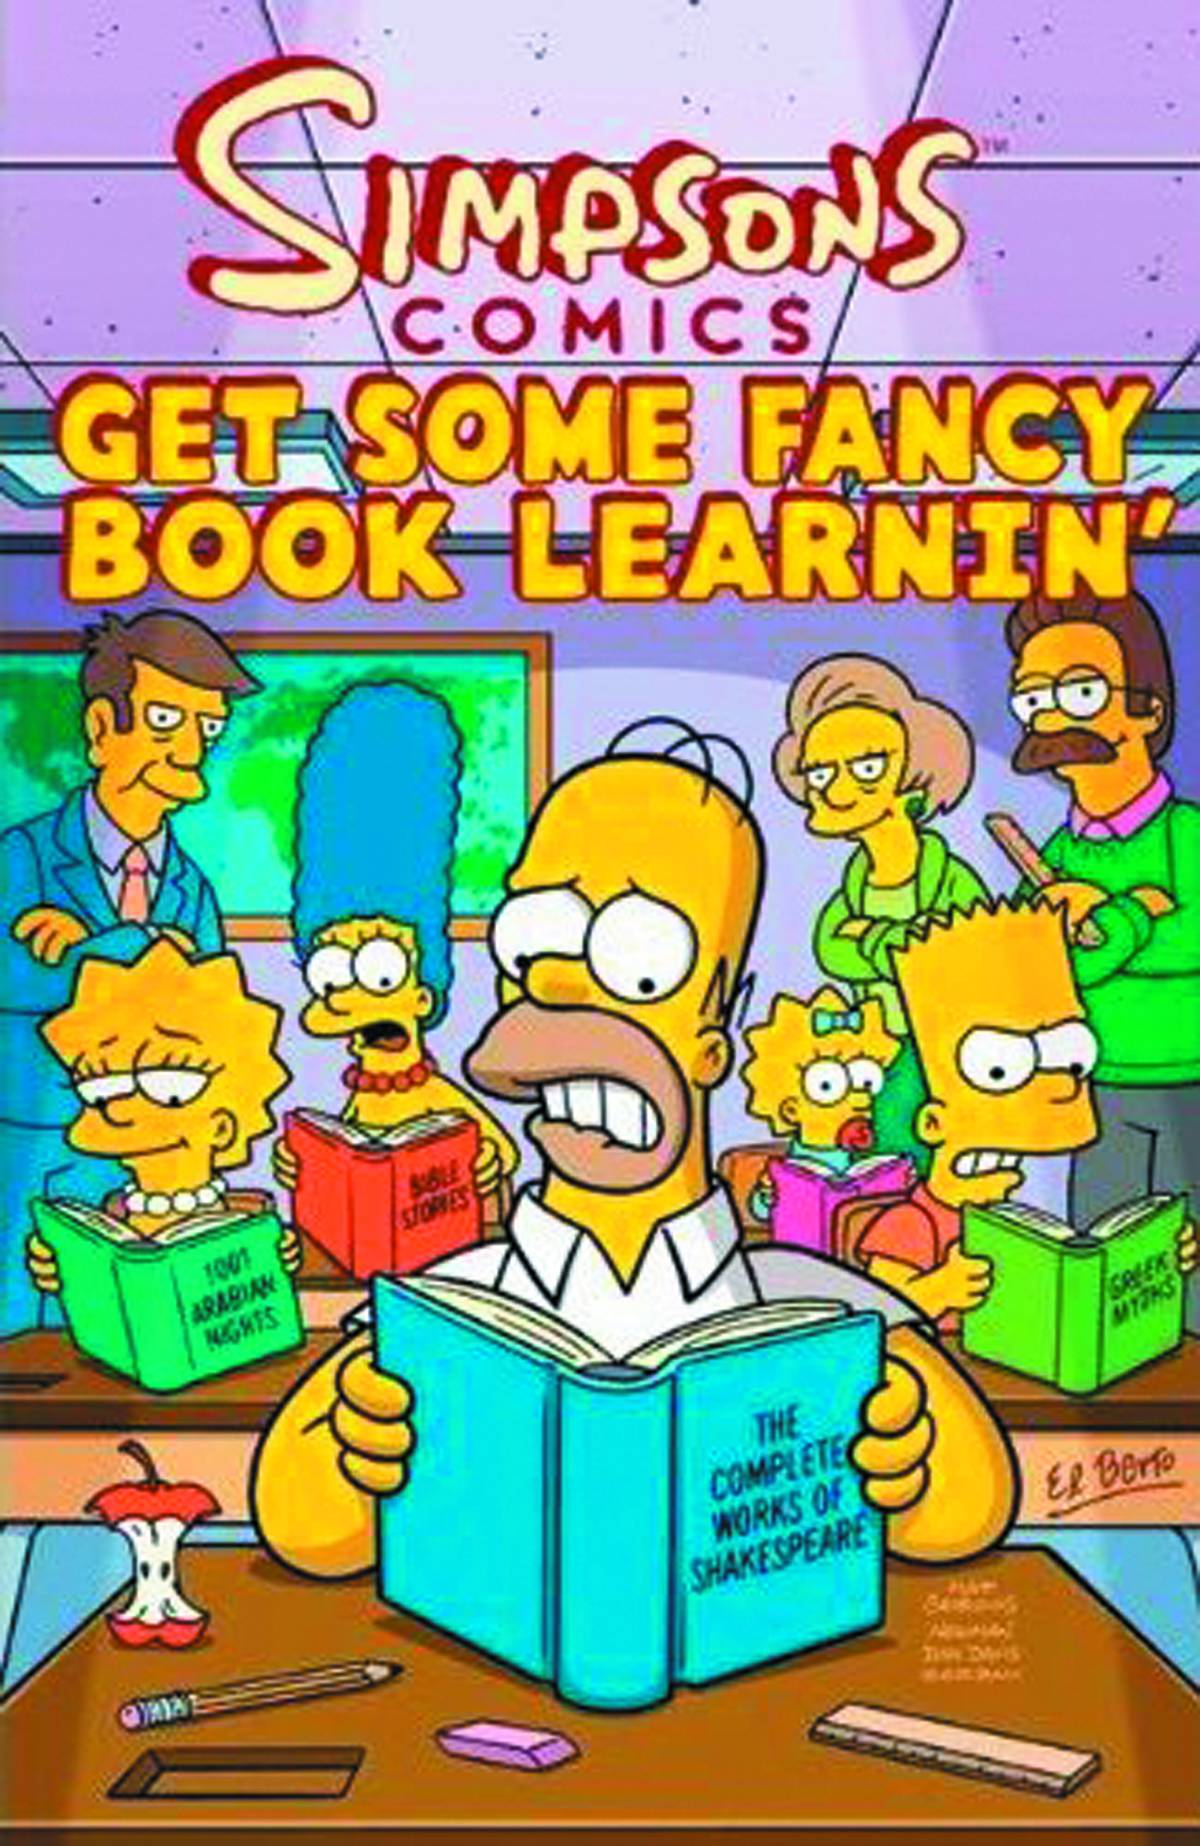 SIMPSONS COMICS [VOL 18:] GET SOME FANCY BOOK LEARNIN'